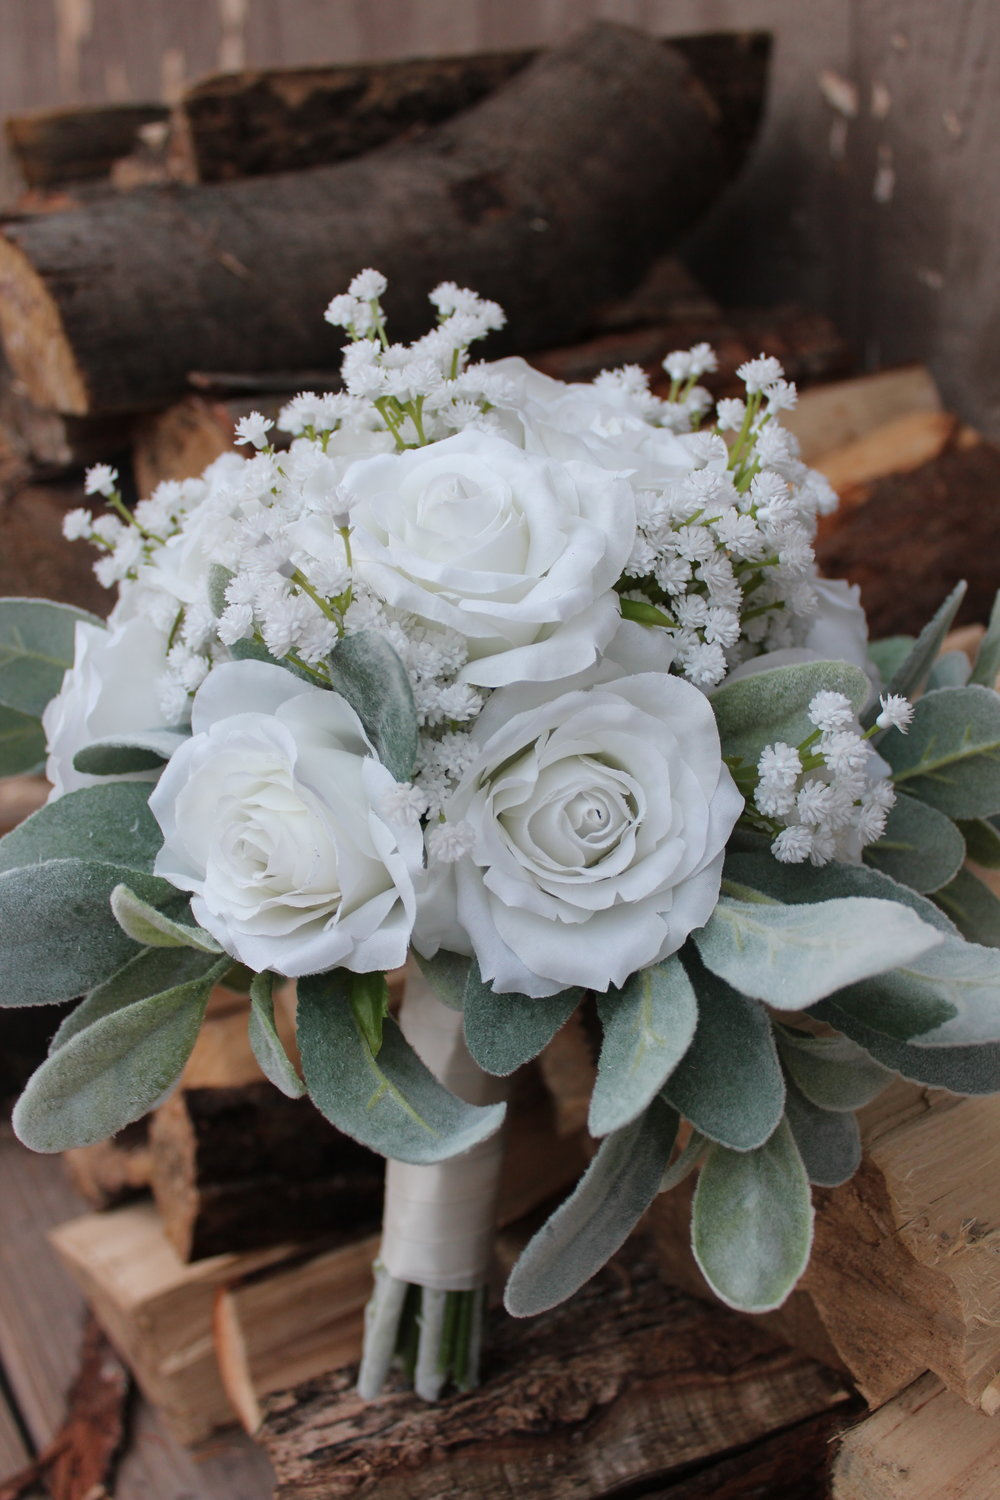 White Roses and Baby's Breath, softened up with Lamb's Ear and Ivory Ribbon